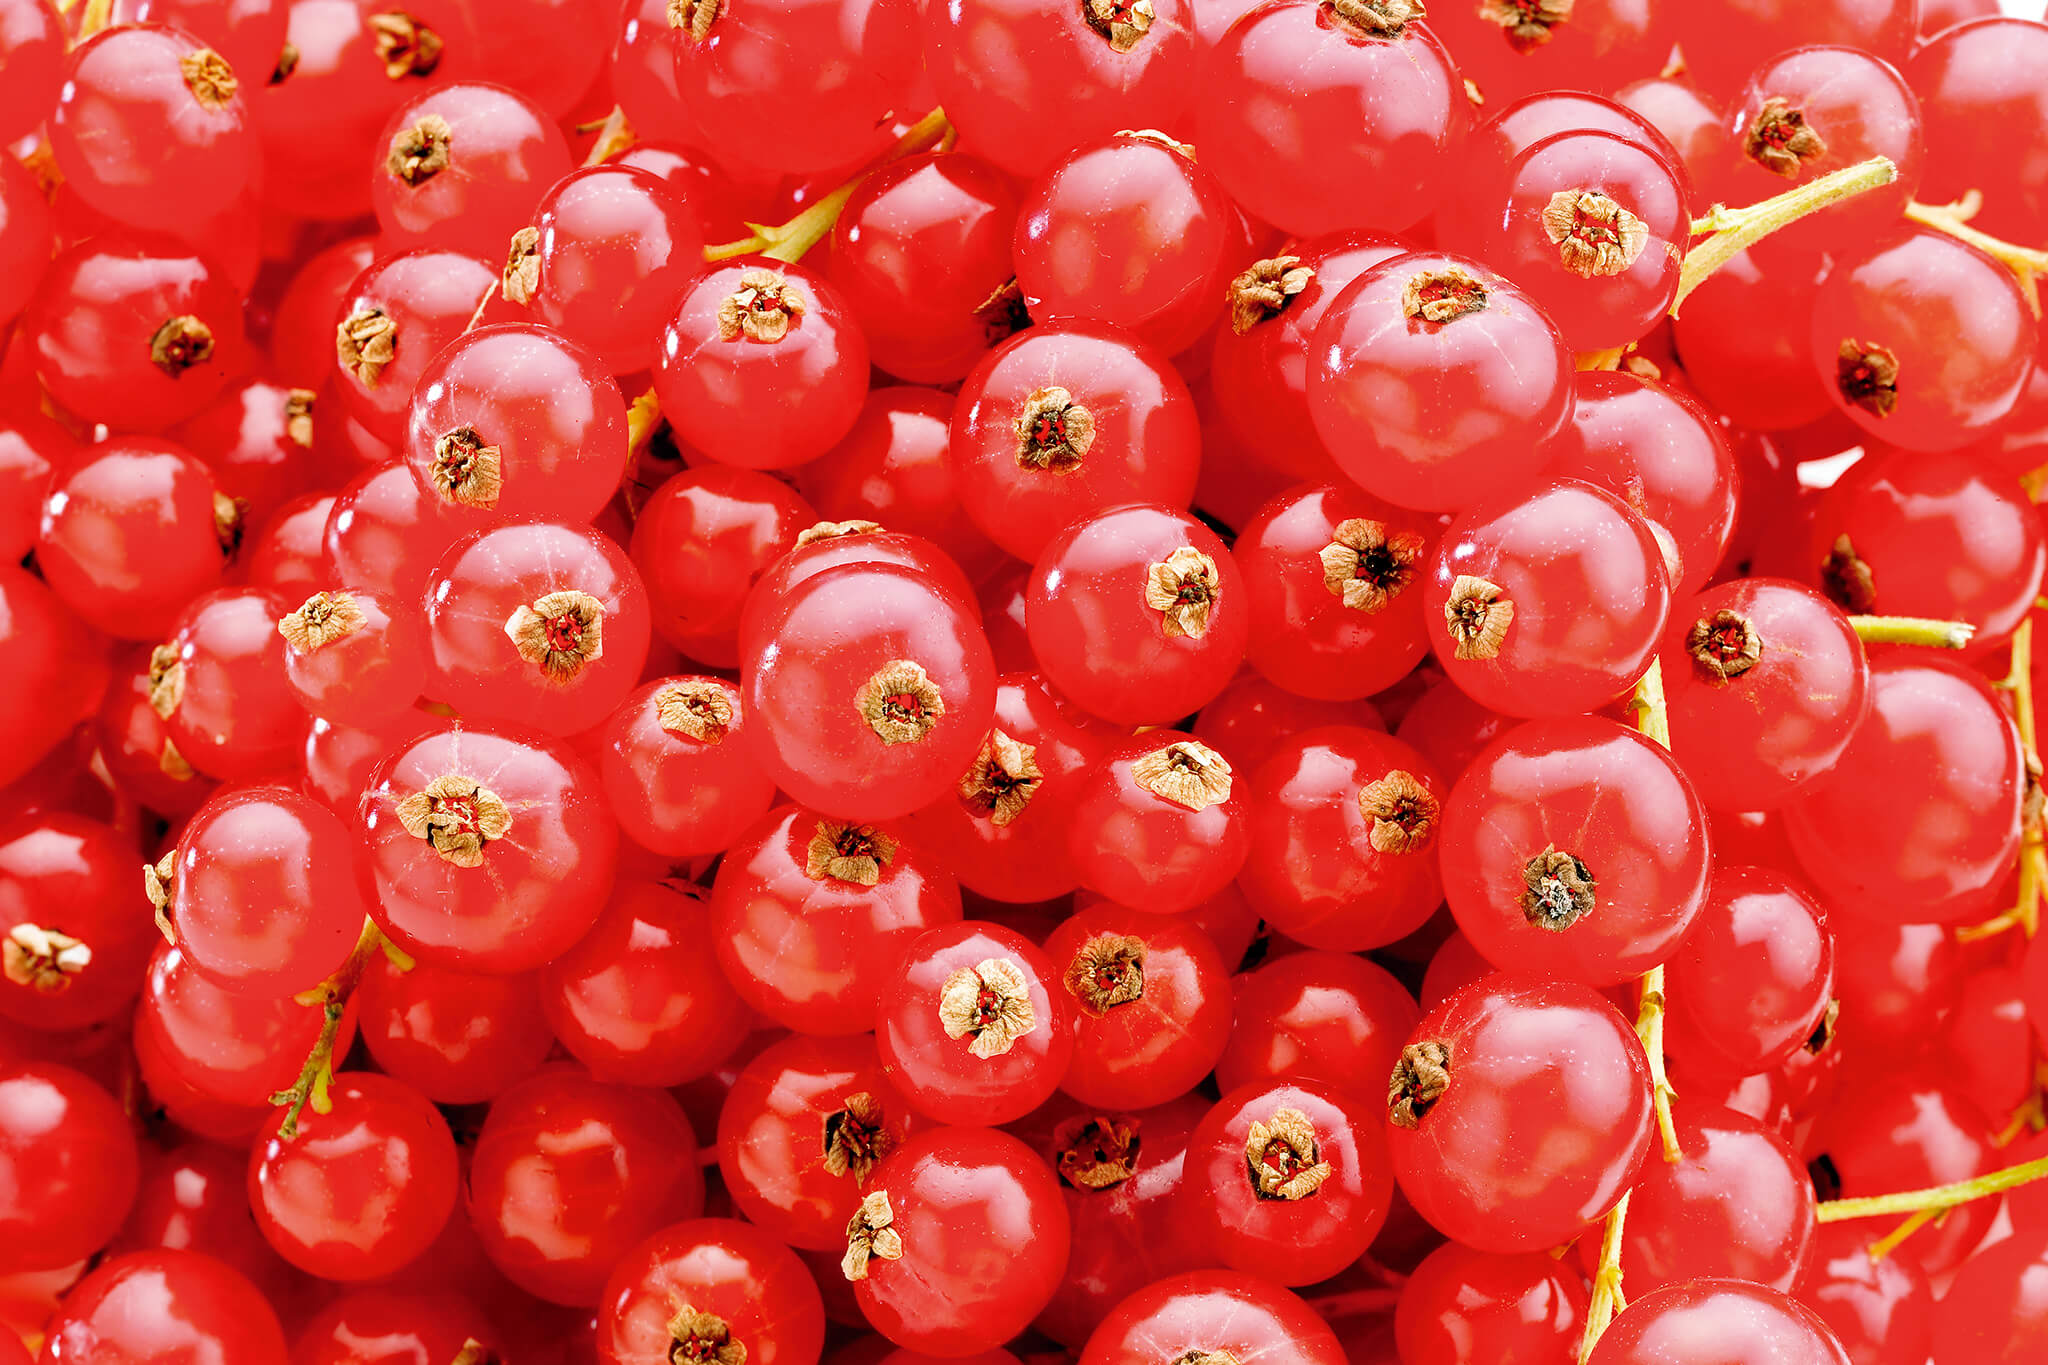 Heap of redcurrants (Ribes rubrum)